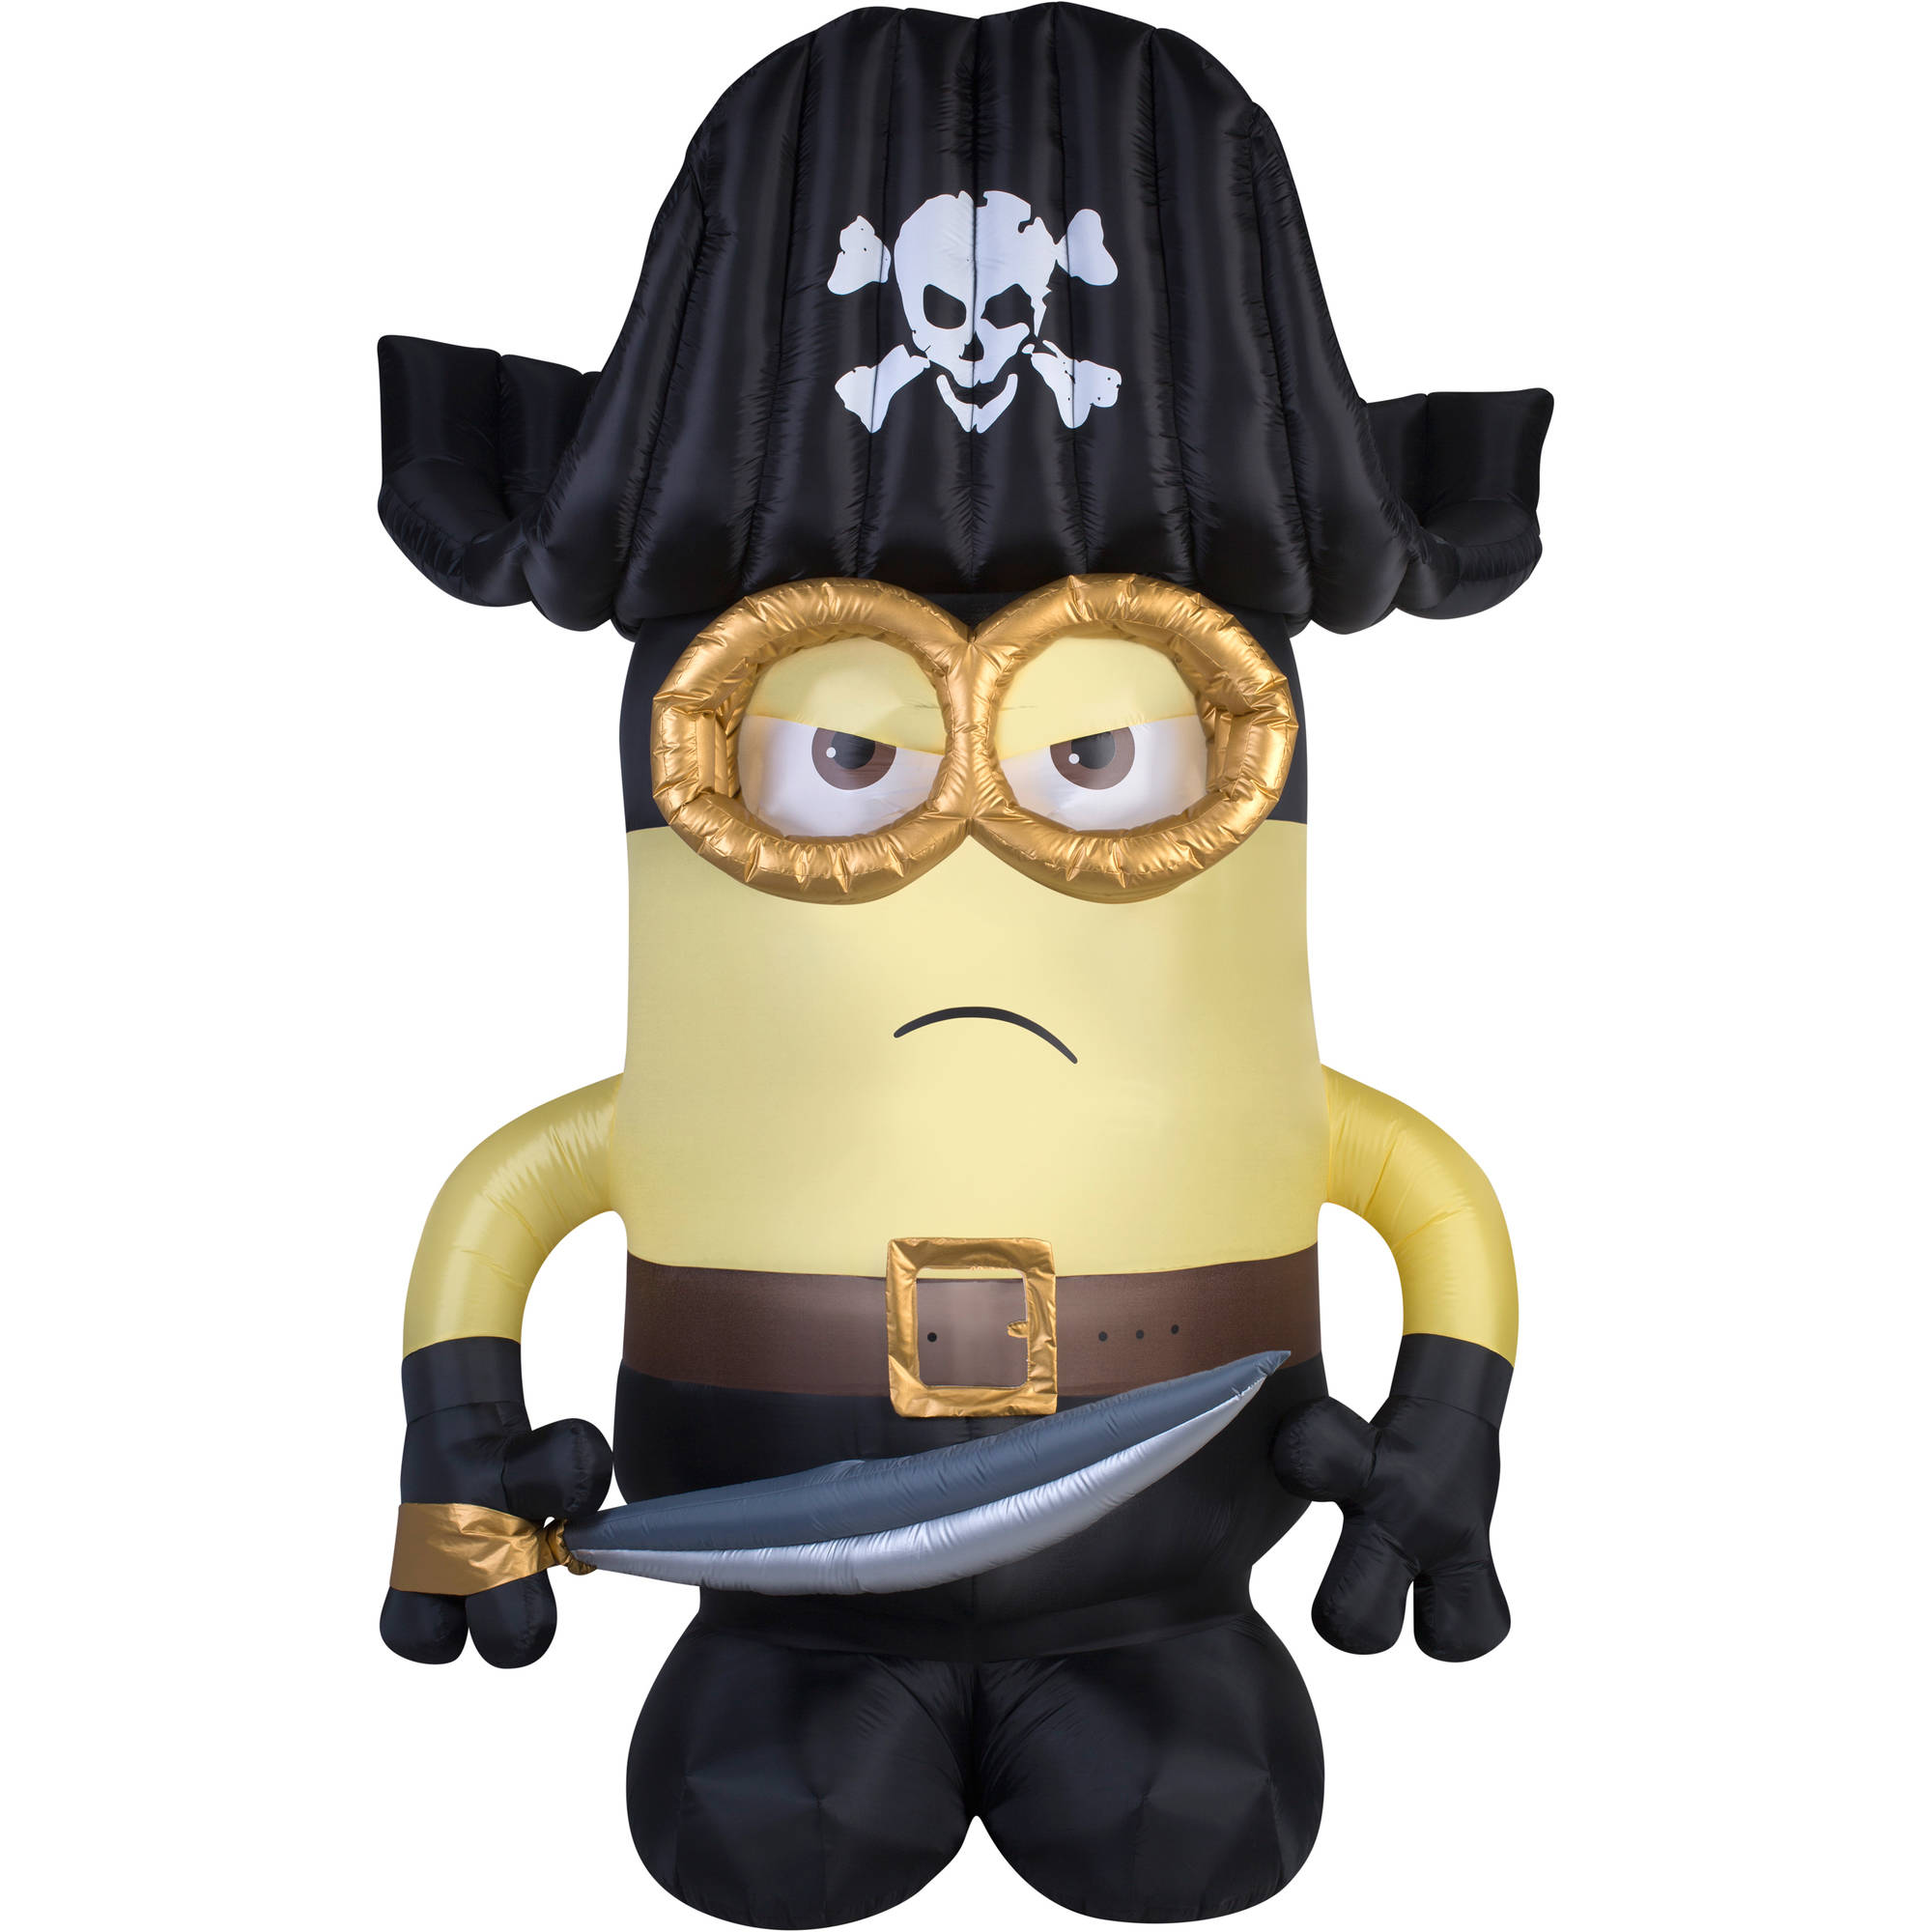 gemmy airblown inflatable 9 x 6 giant eye pirate matie minion halloween decoration walmartcom - Outdoor Inflatable Halloween Decorations